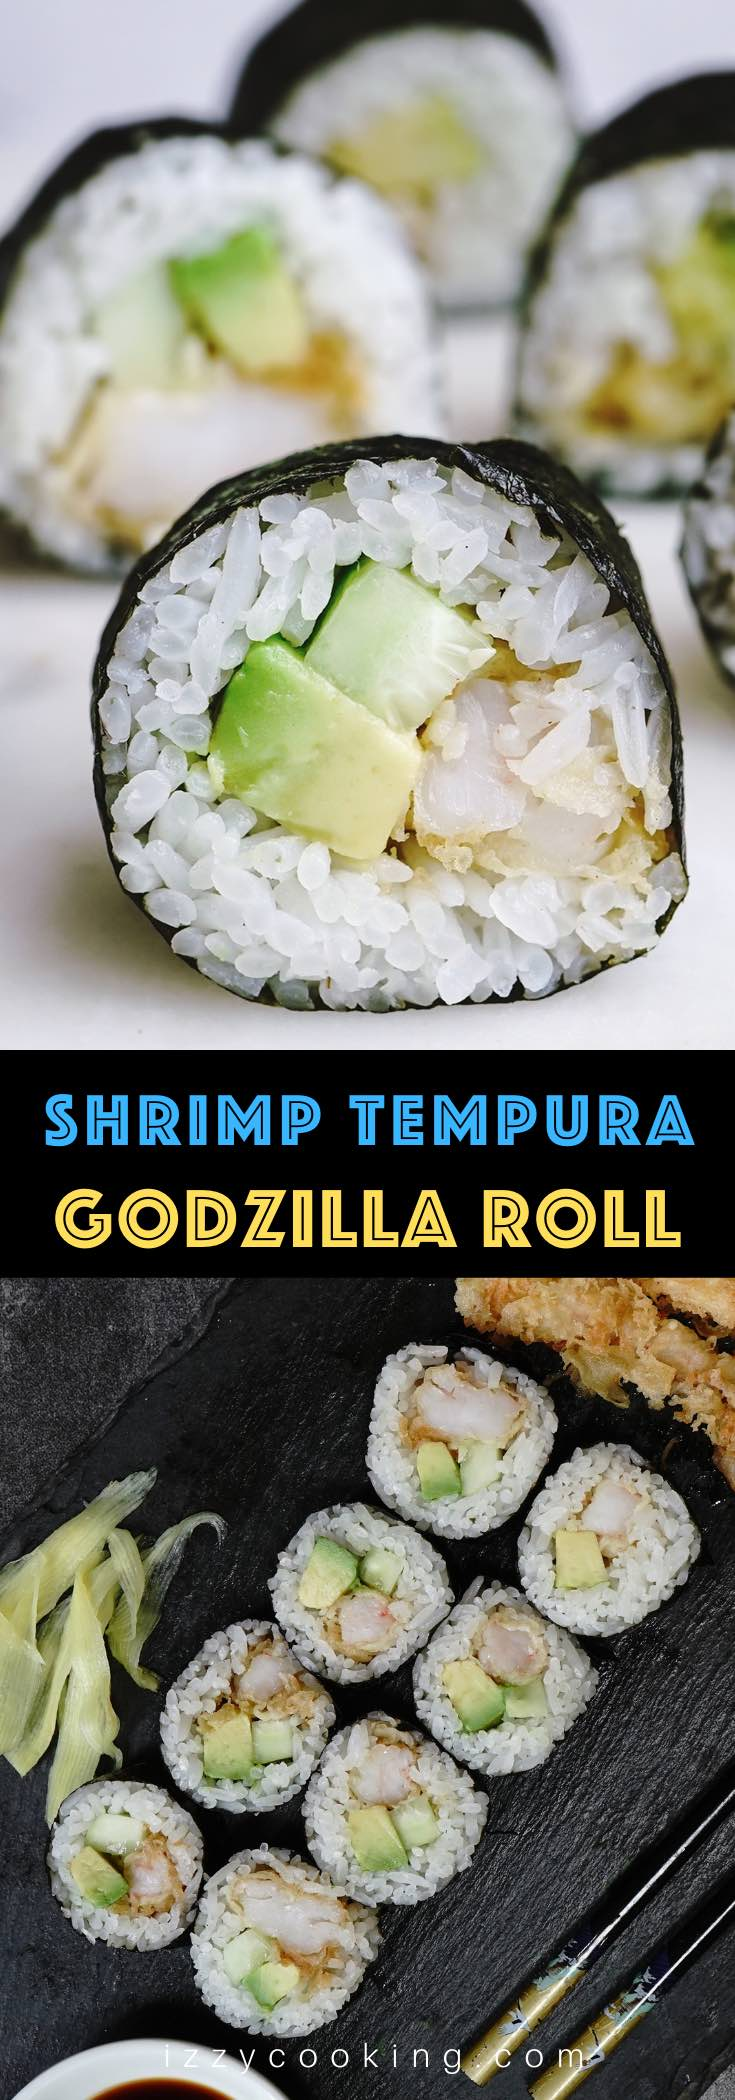 Godzilla Rolls are filled with crispy shrimp tempura, avocado and cucumber, all wrapped in nori seaweed sheets and seasoned rice. Then drizzle it with soy sauce or spicy mayo for some extra flavor.  You can easily make this popular Japanese shrimp tempura roll recipe, so skip the restaurant and prepare some in the comfort of your own home!  #GodzillaRoll #GodzillaRollSushi